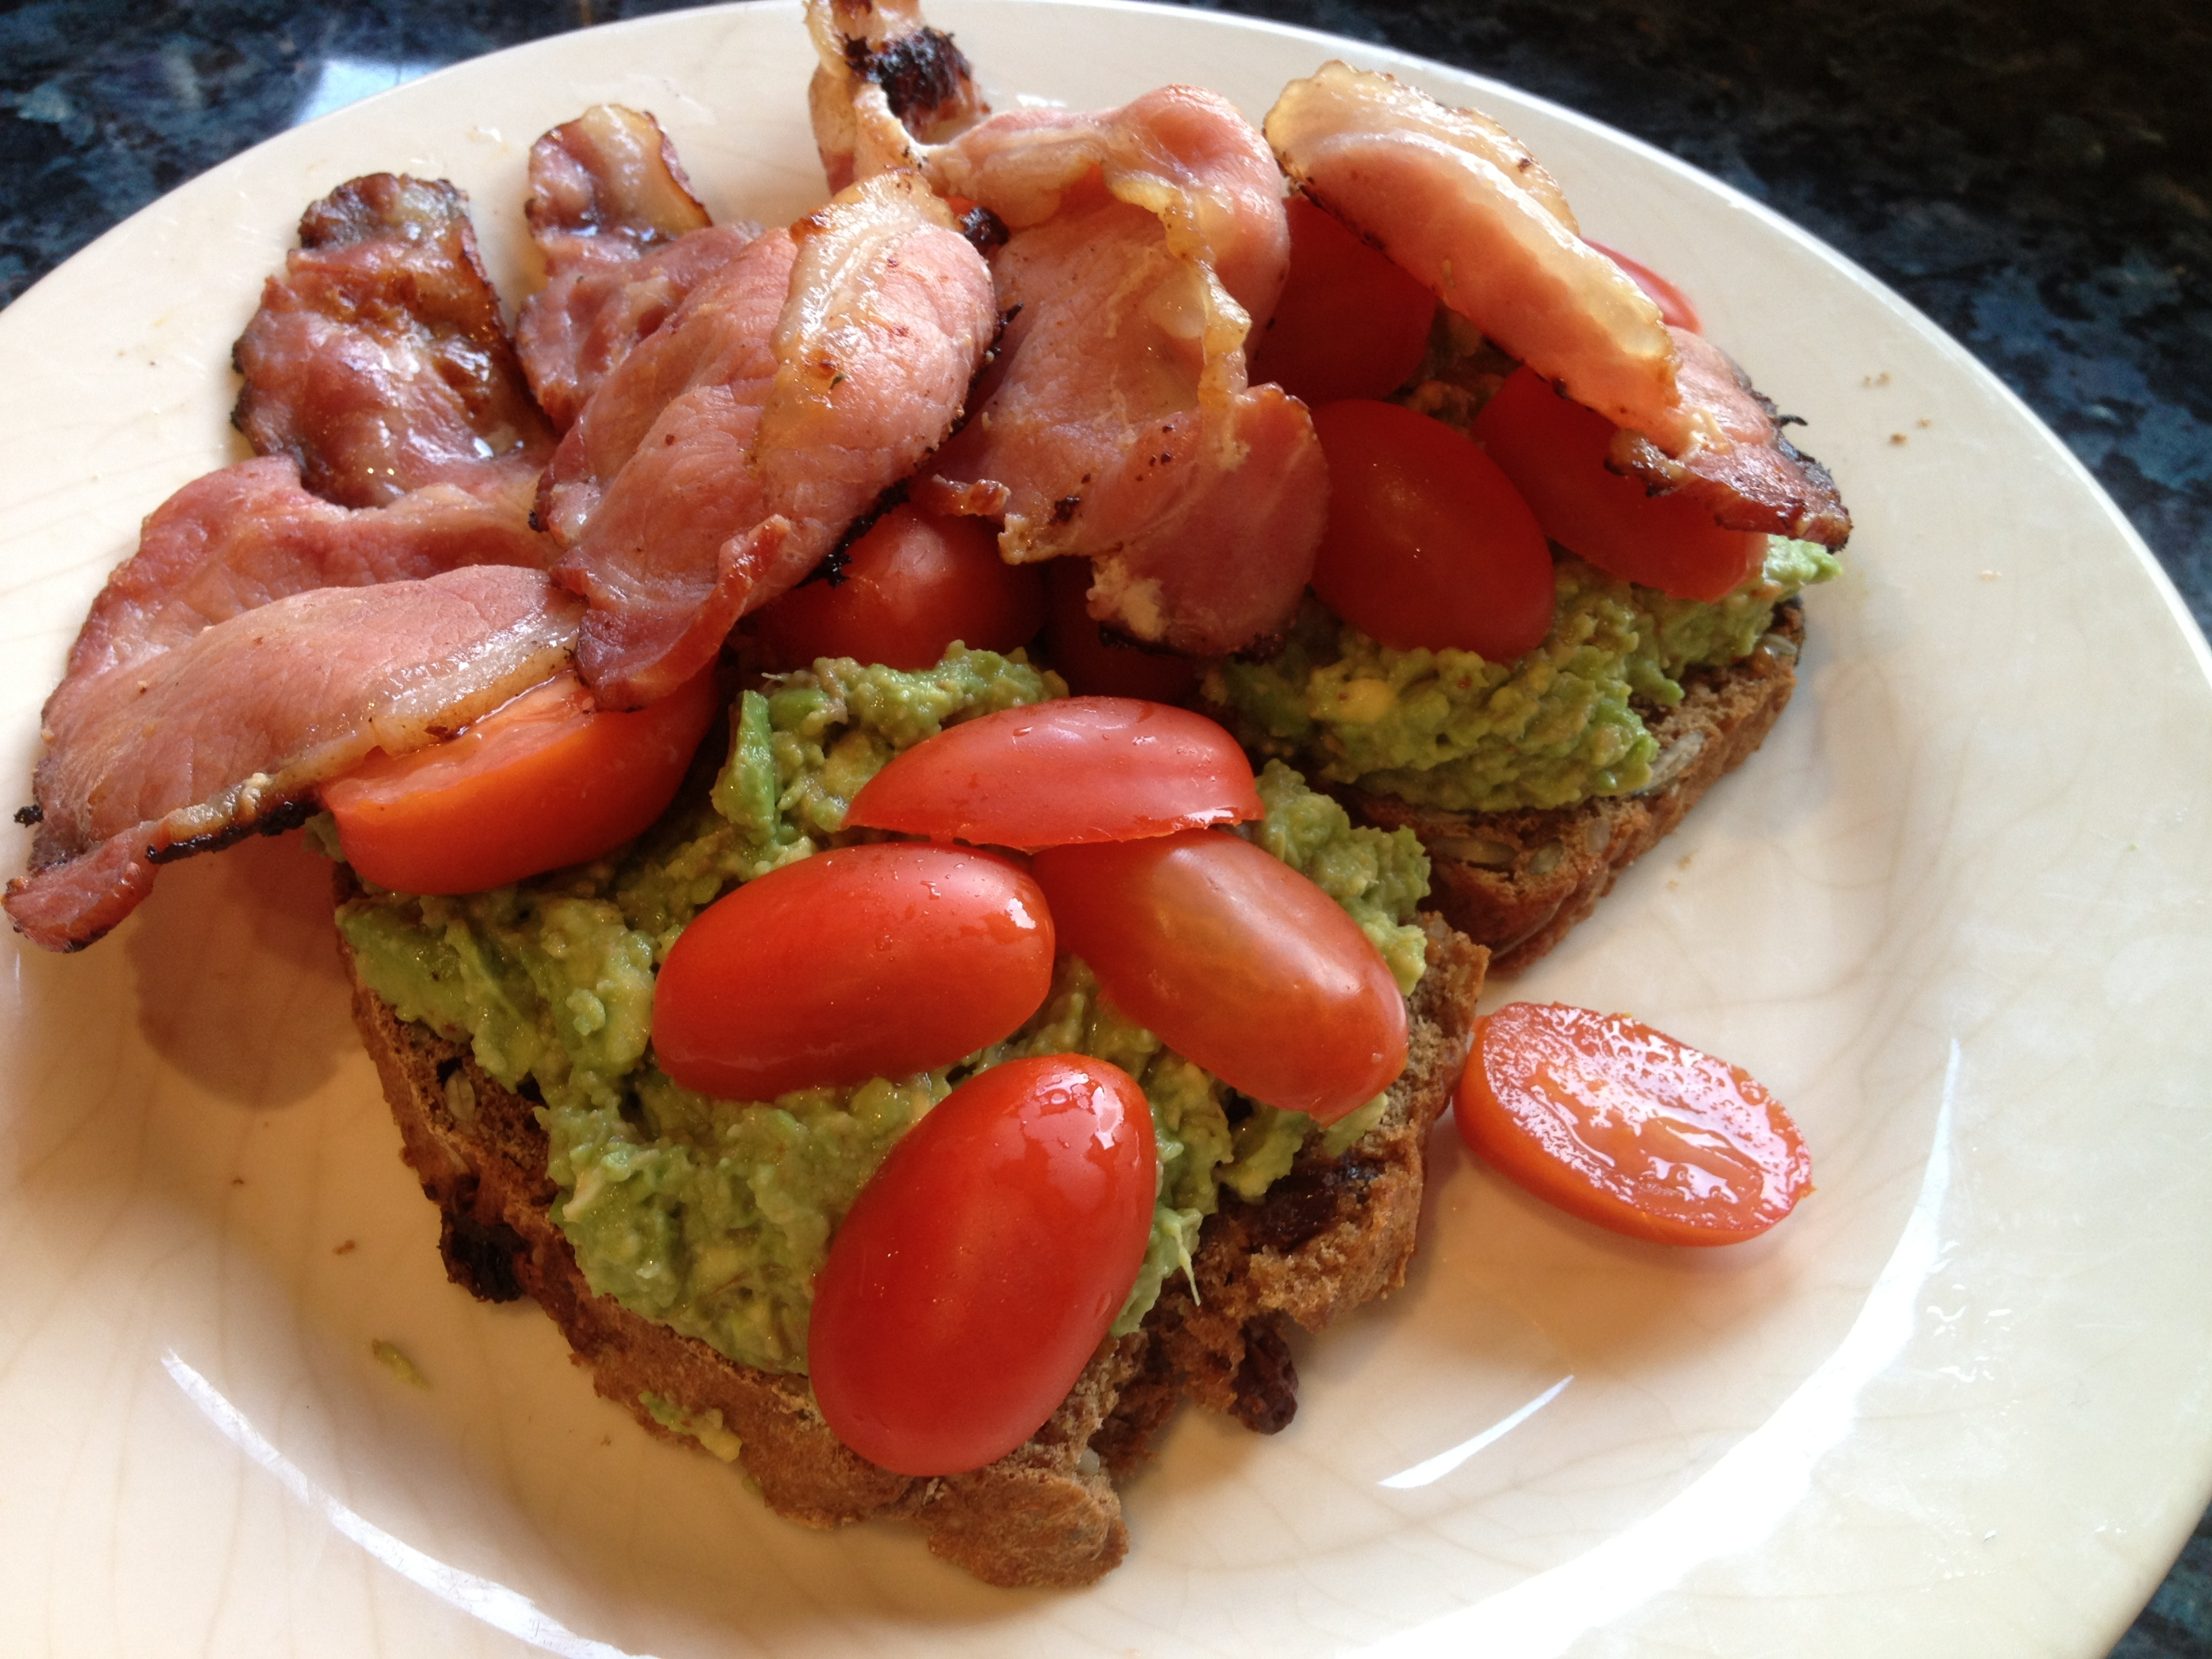 ... Juicy Cherry Tomatoes Delicious Bacon Avocado Toast Lady Sized Portion